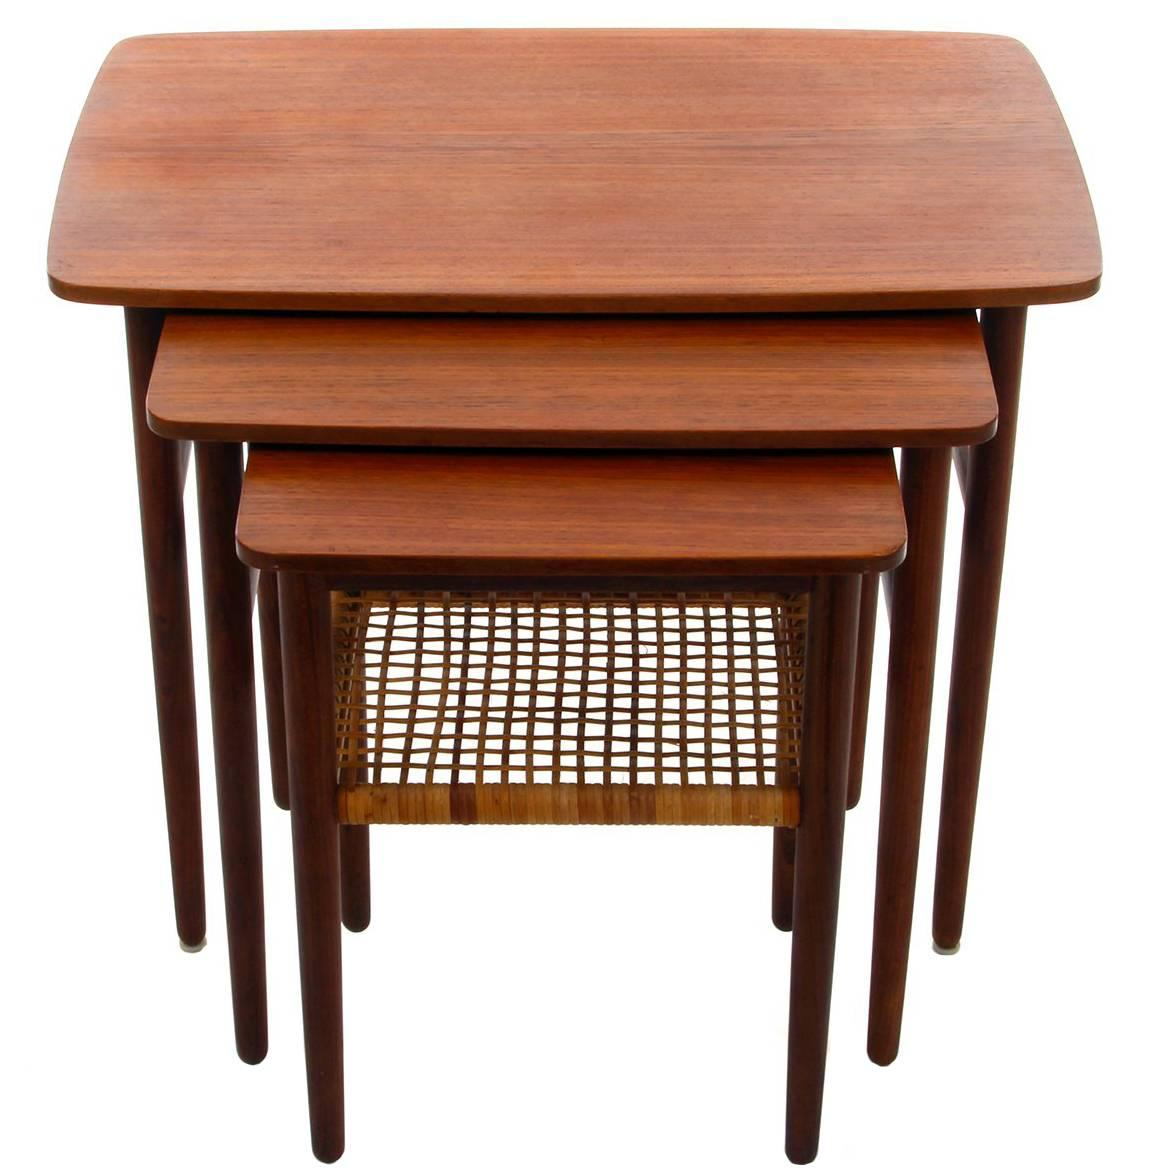 Teak And Rosewood Nesting Tables, 1950s, Danish Mid Century Modern Nested  Tables For